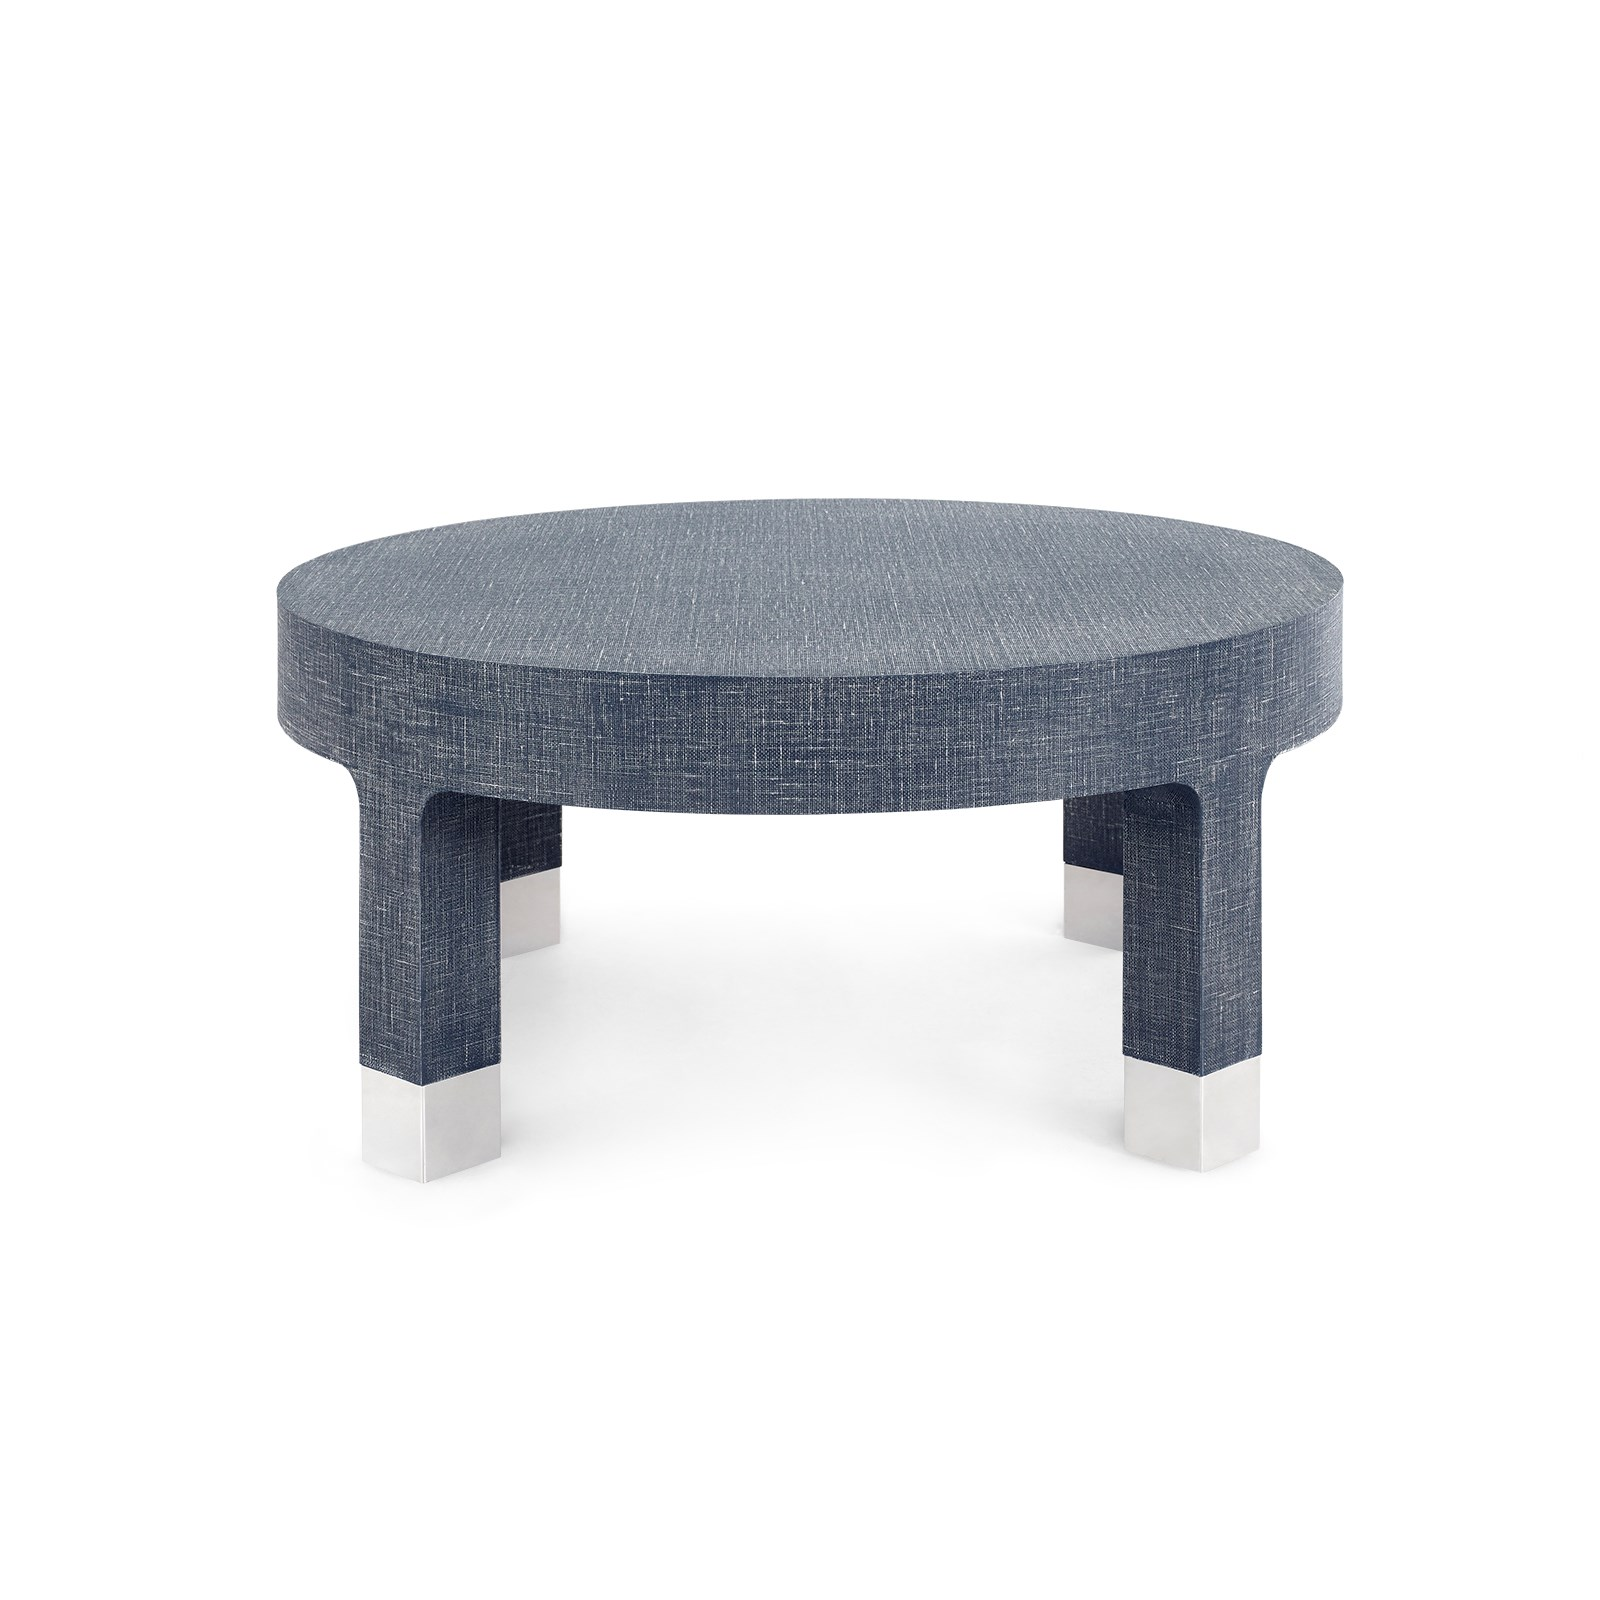 dakota round coffee table navy blue bungalow truth tables geometry end western laura ashley ceiling lights next couches industrial small plastic outside garden furniture waylon